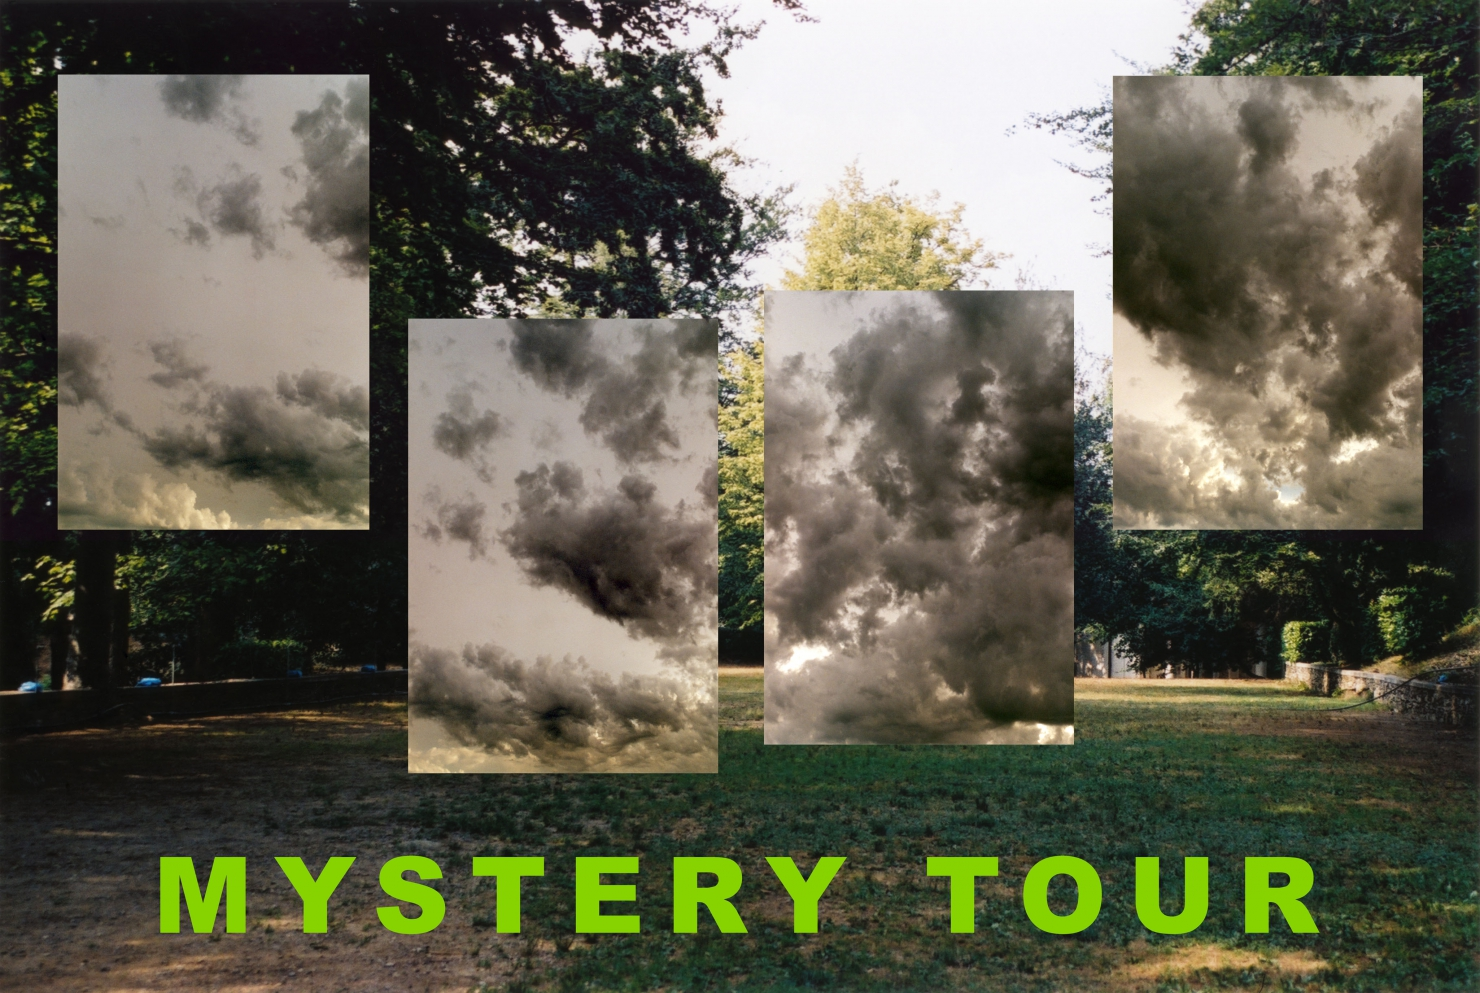 Mystery Tour 08.1 - 2006